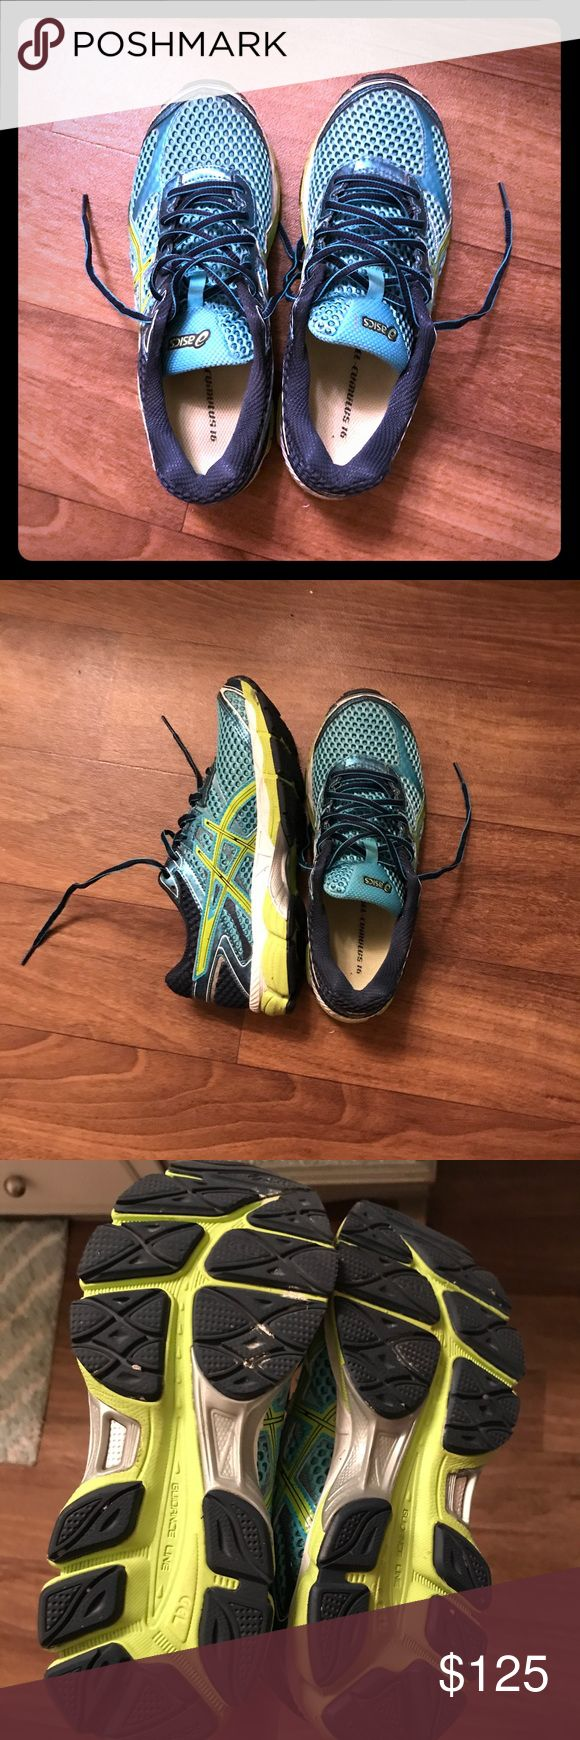 Blue and Green ASIC Nimbus-Gel Athletic Shoes! Worn a few times, great condition!! Smoke free home. Let me know if you have any questions(: Asics Shoes Athletic Shoes